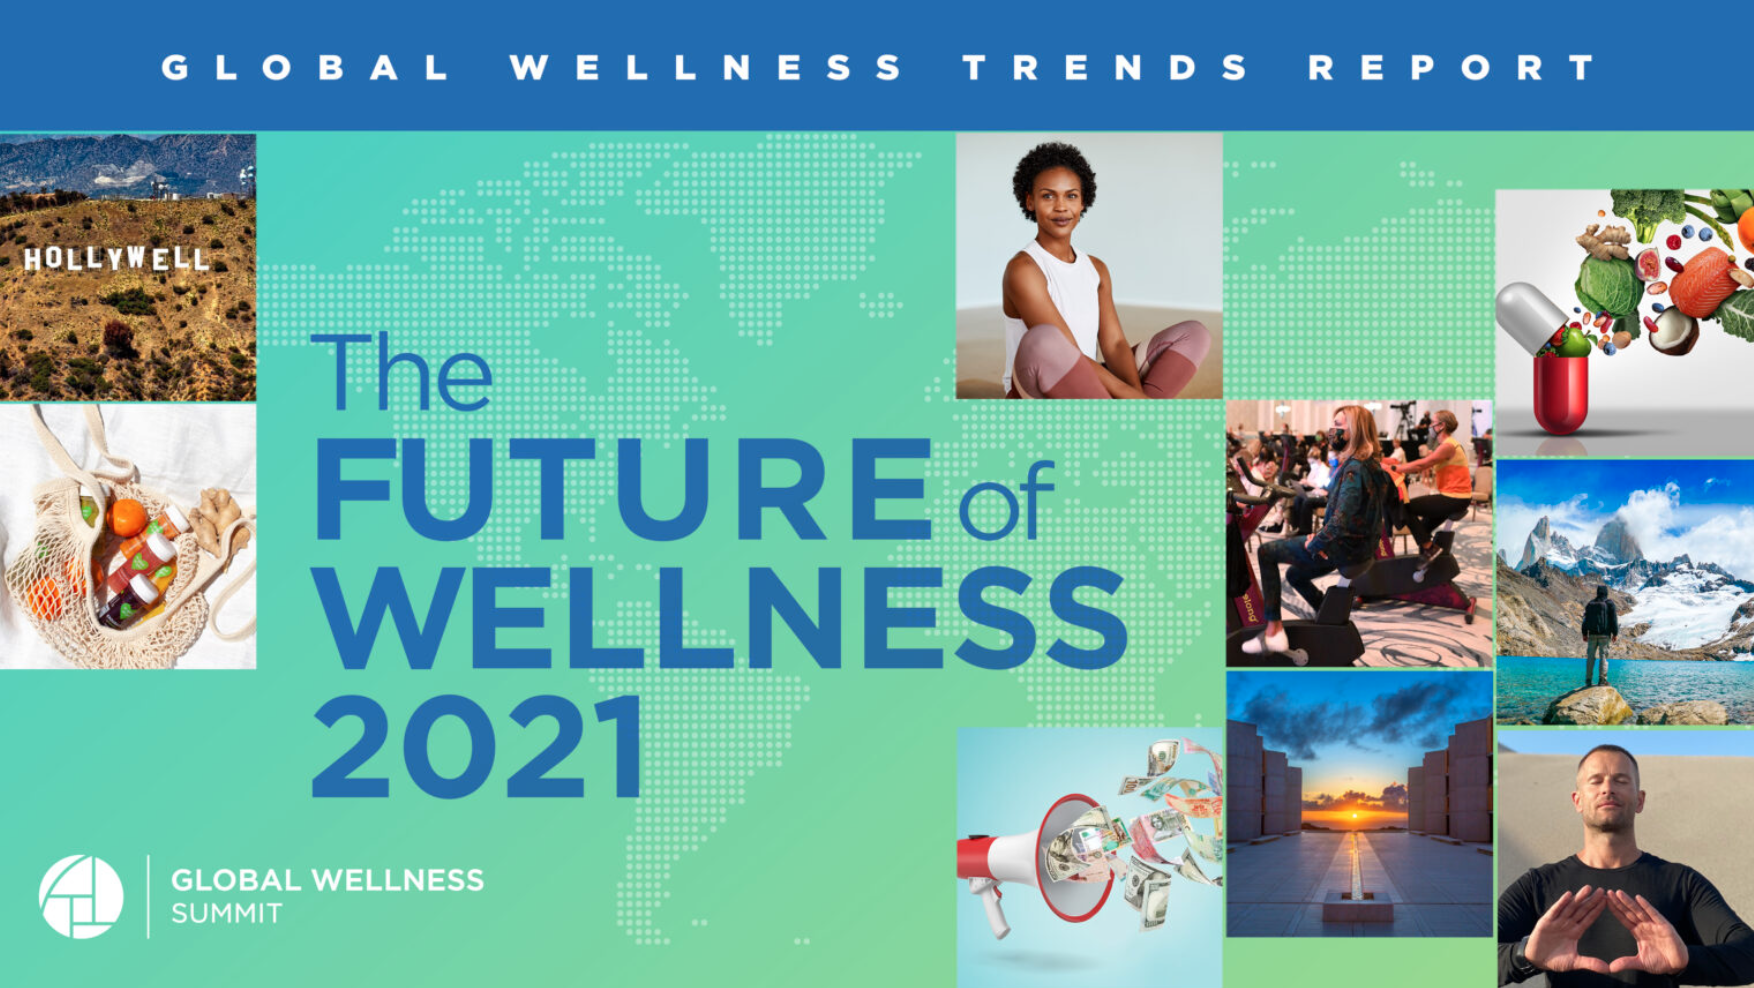 The Global Wellness Summit releases 'The Future of Wellness 2021' trends report Image